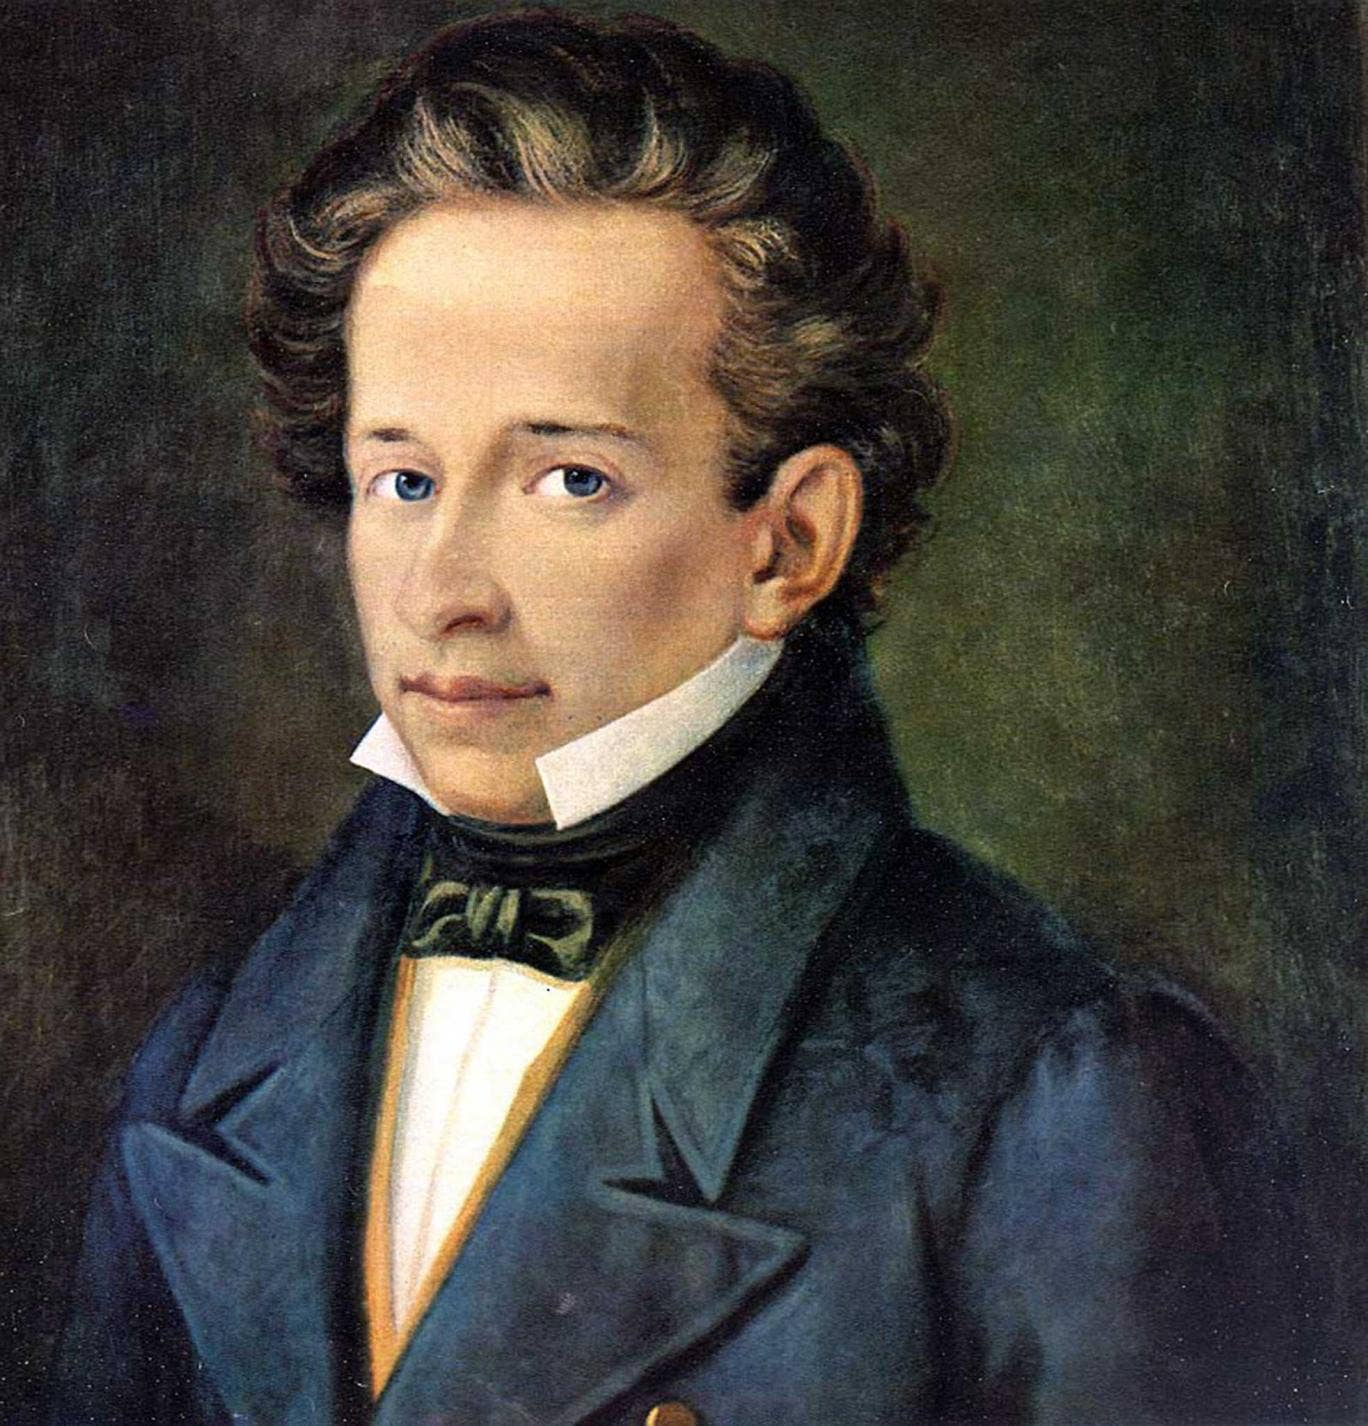 The loss of happiness: Giacomo Leopardi